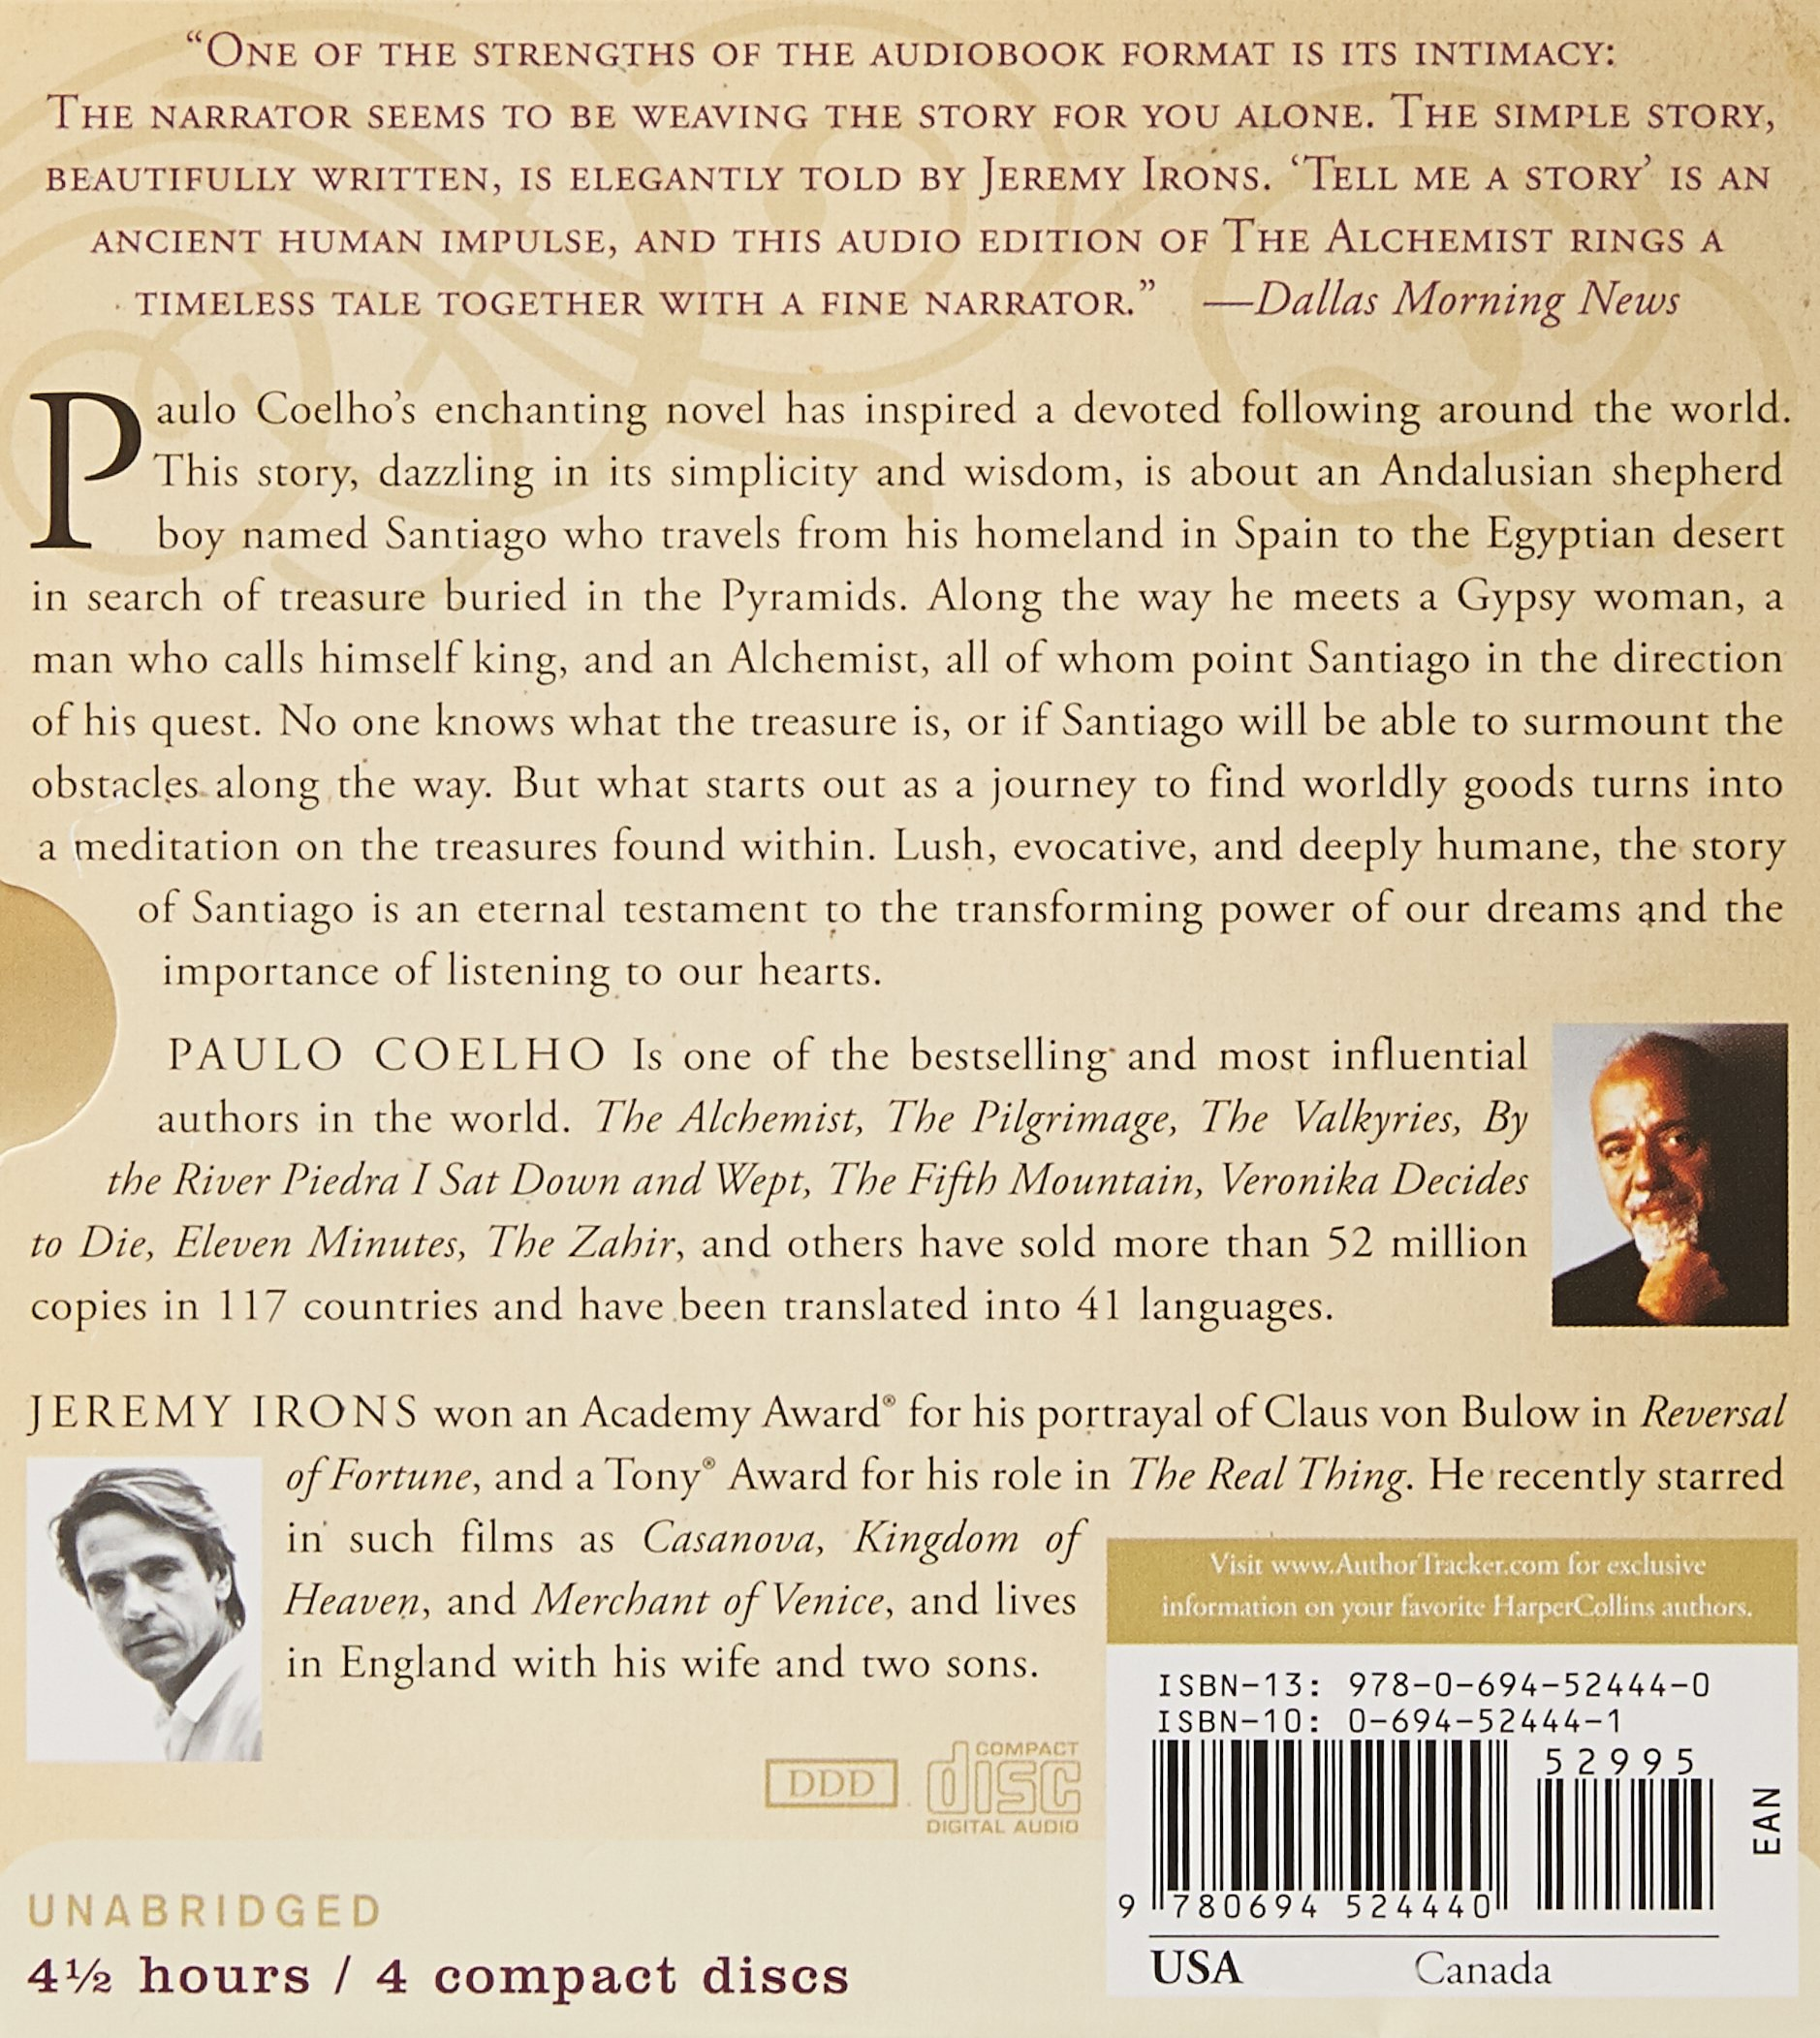 the alchemist cd paulo coelho jeremy irons 9780694524440 the alchemist cd paulo coelho jeremy irons 9780694524440 com books